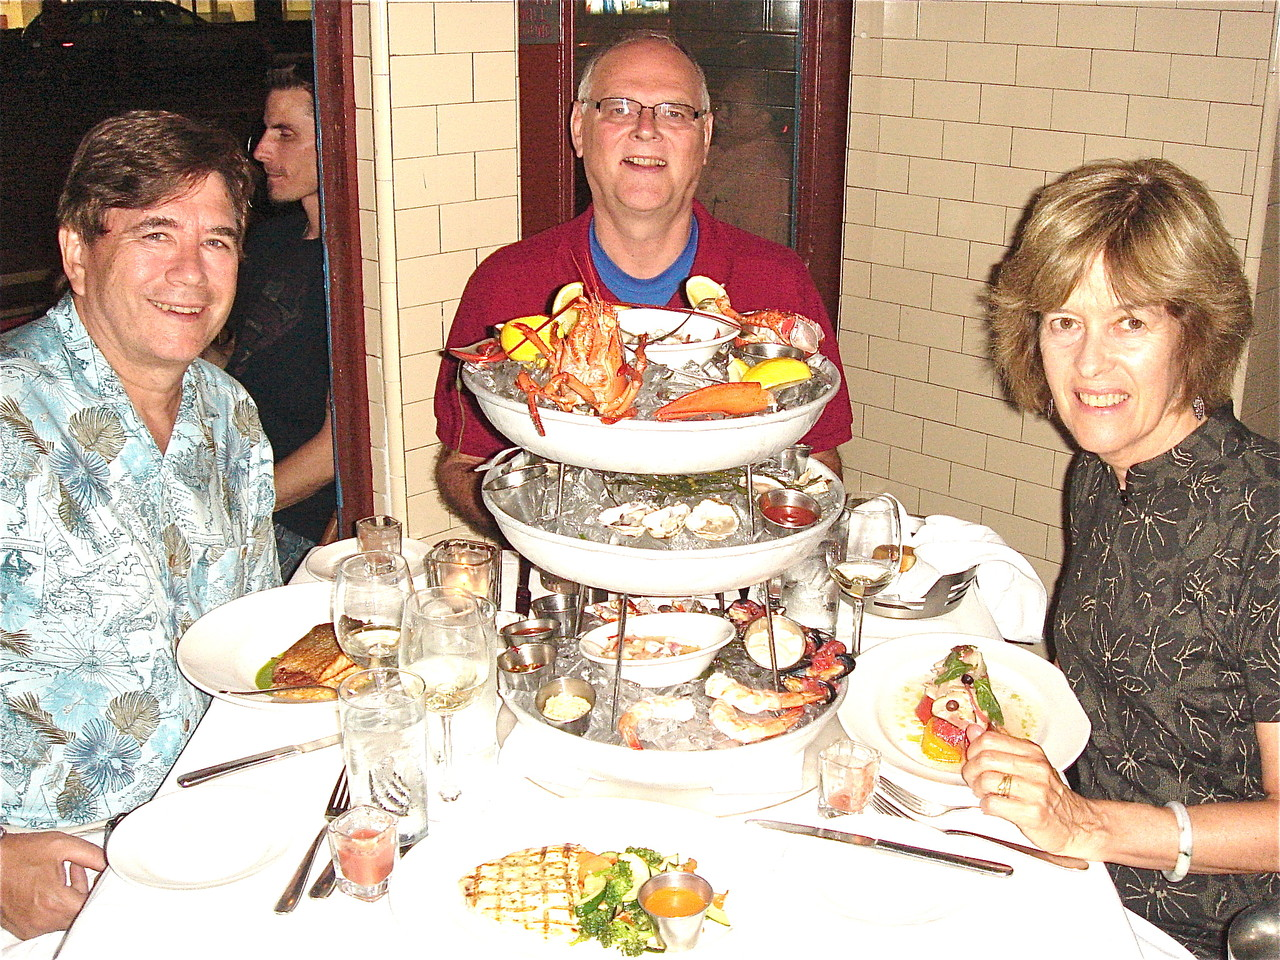 John, Bernd  & Nancy with the Skyscraper at Atlantic Grill